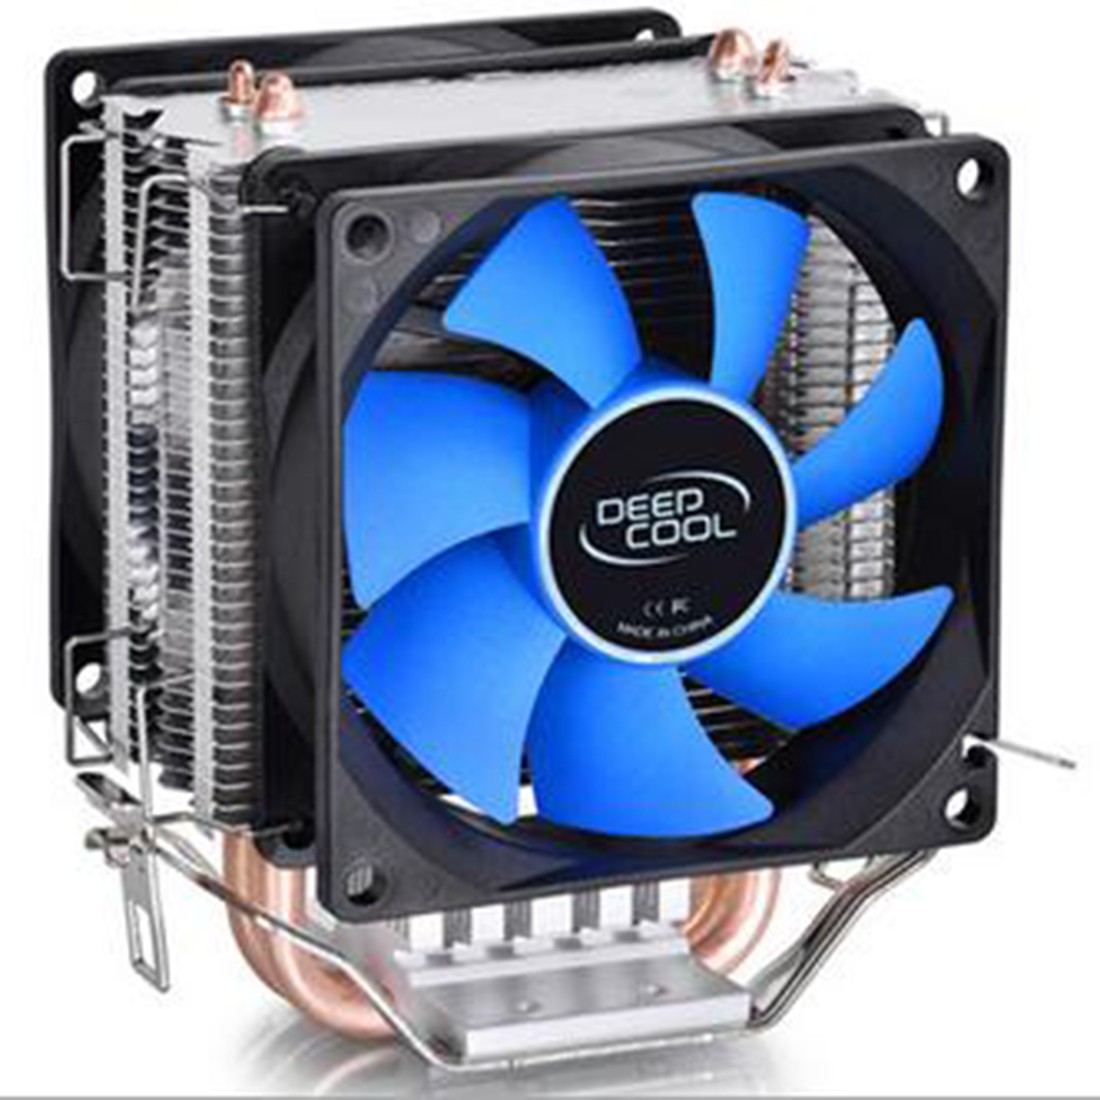 CPU Cooler Fan Double Heat Pipe Radiator for Intel LGA 775/115x AMD 754/940/AM2+/AM3/FM1/FM2 Cooling huanghai luxury cpu radiator 775 115x cpu fan 4 heat pipe intelligent led fan